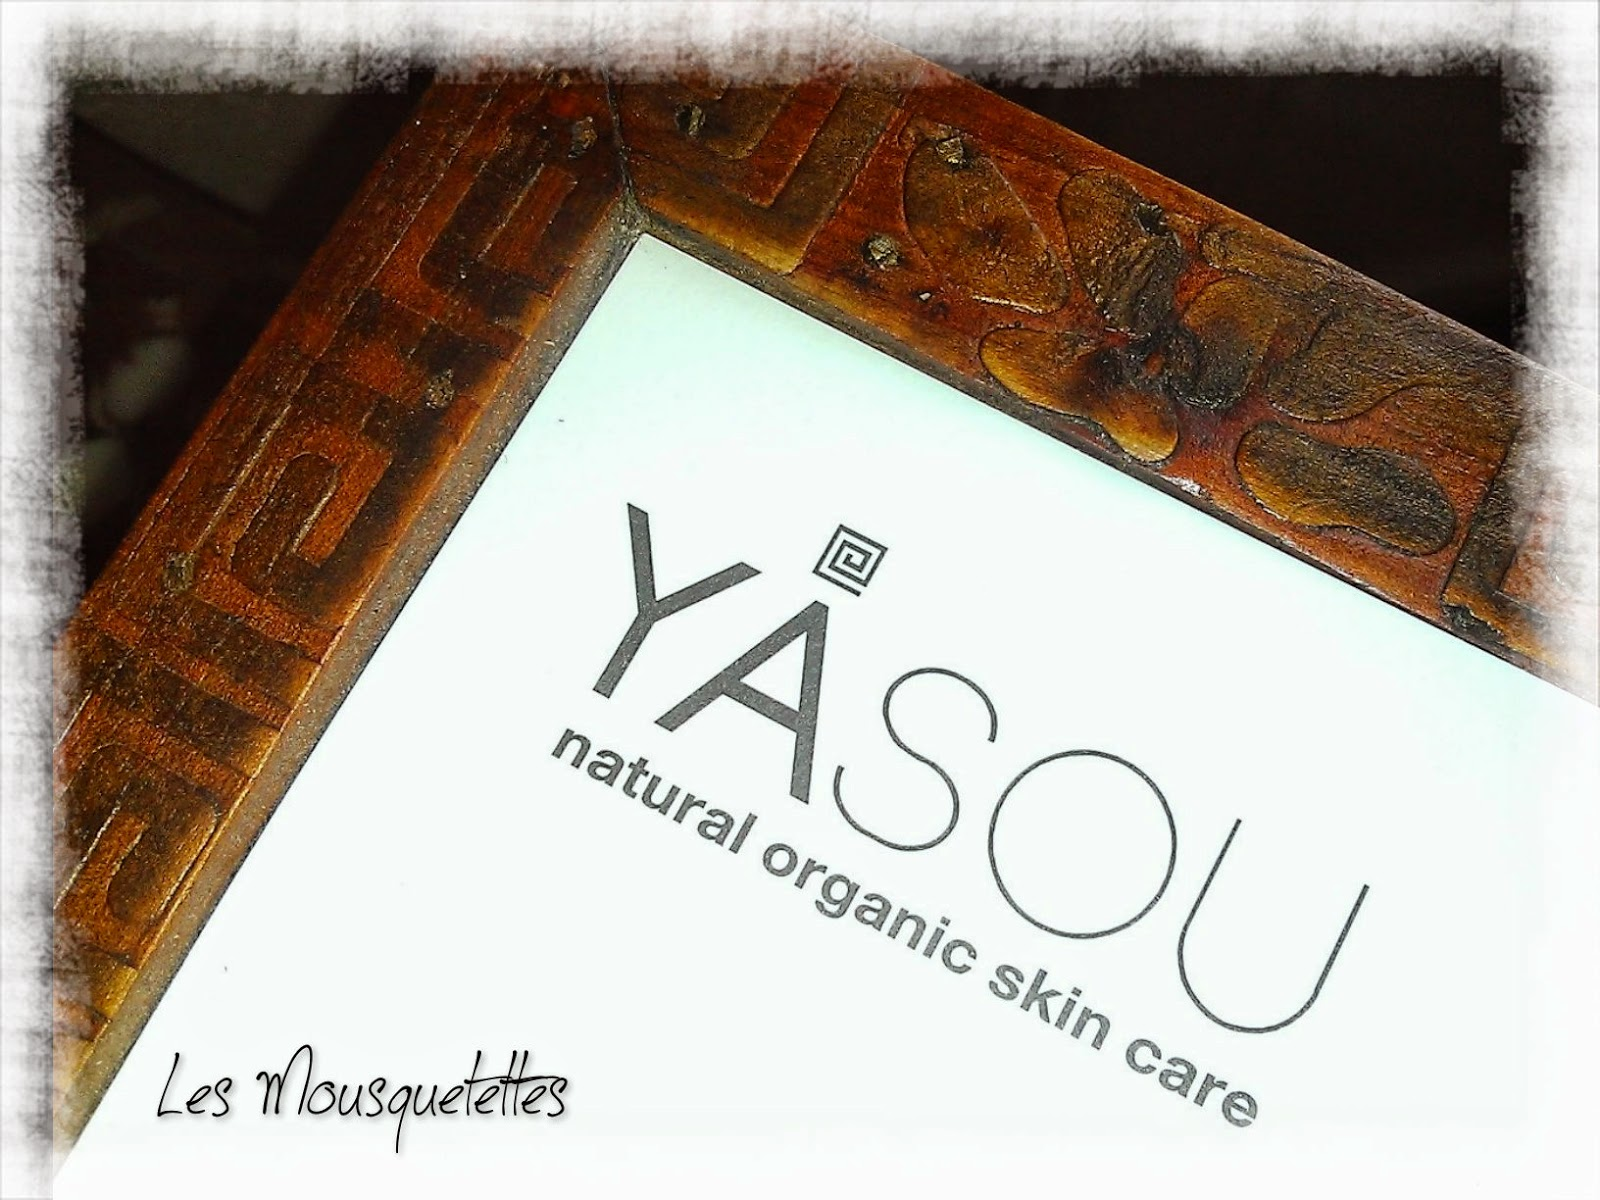 Yasou Natural Organic Skin Care - Les Mousquetettes©